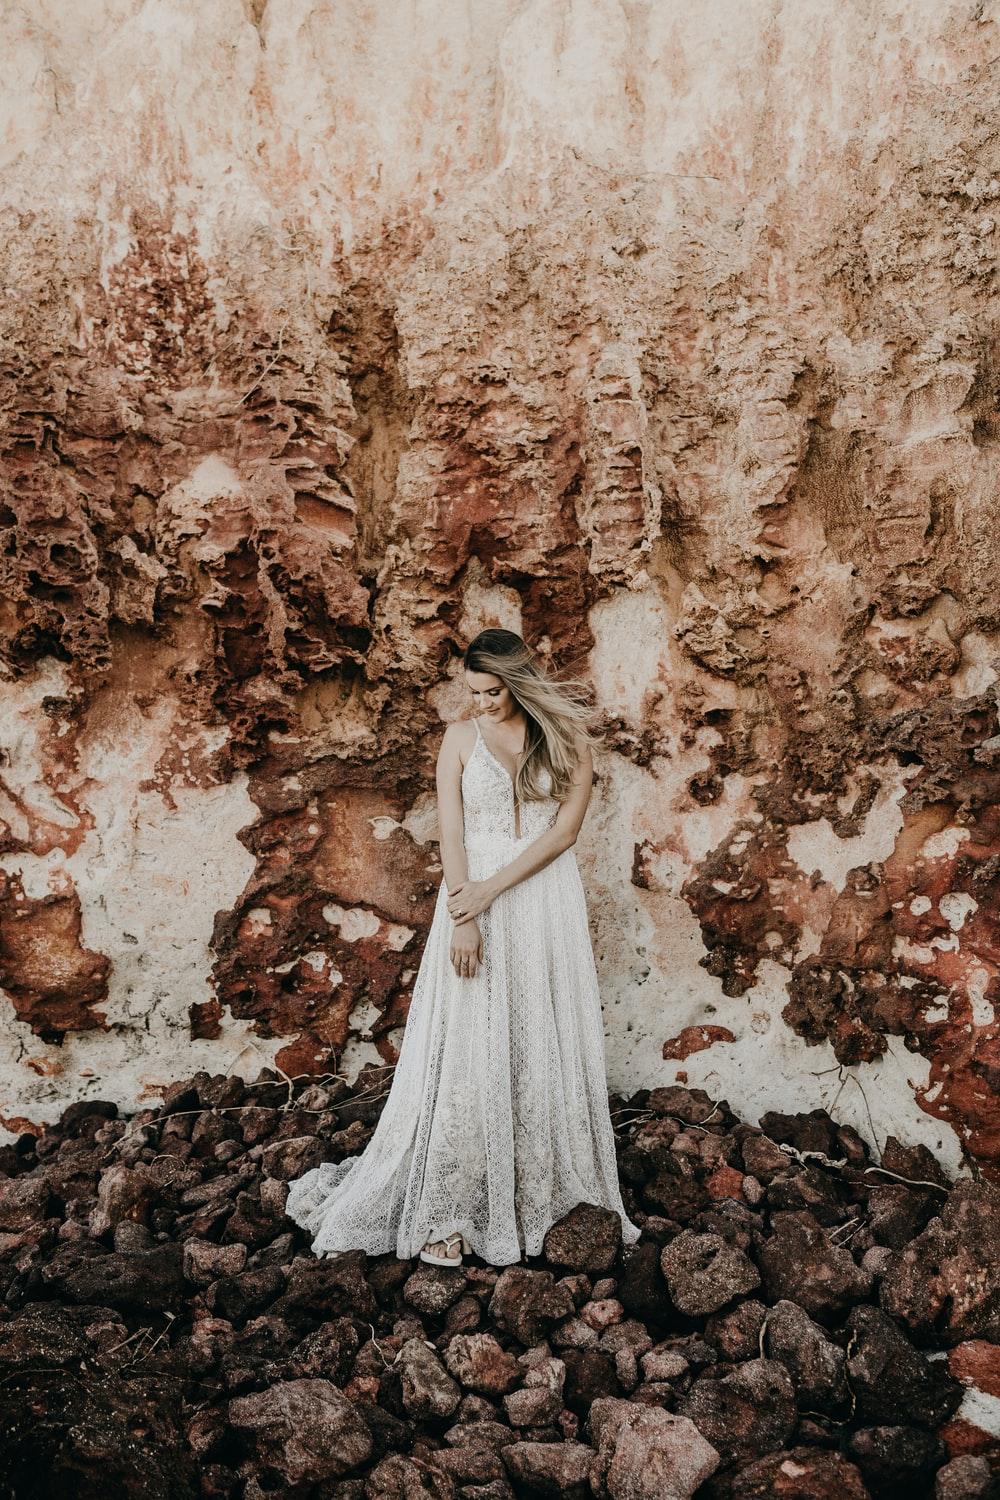 woman in white dress standing under mountain